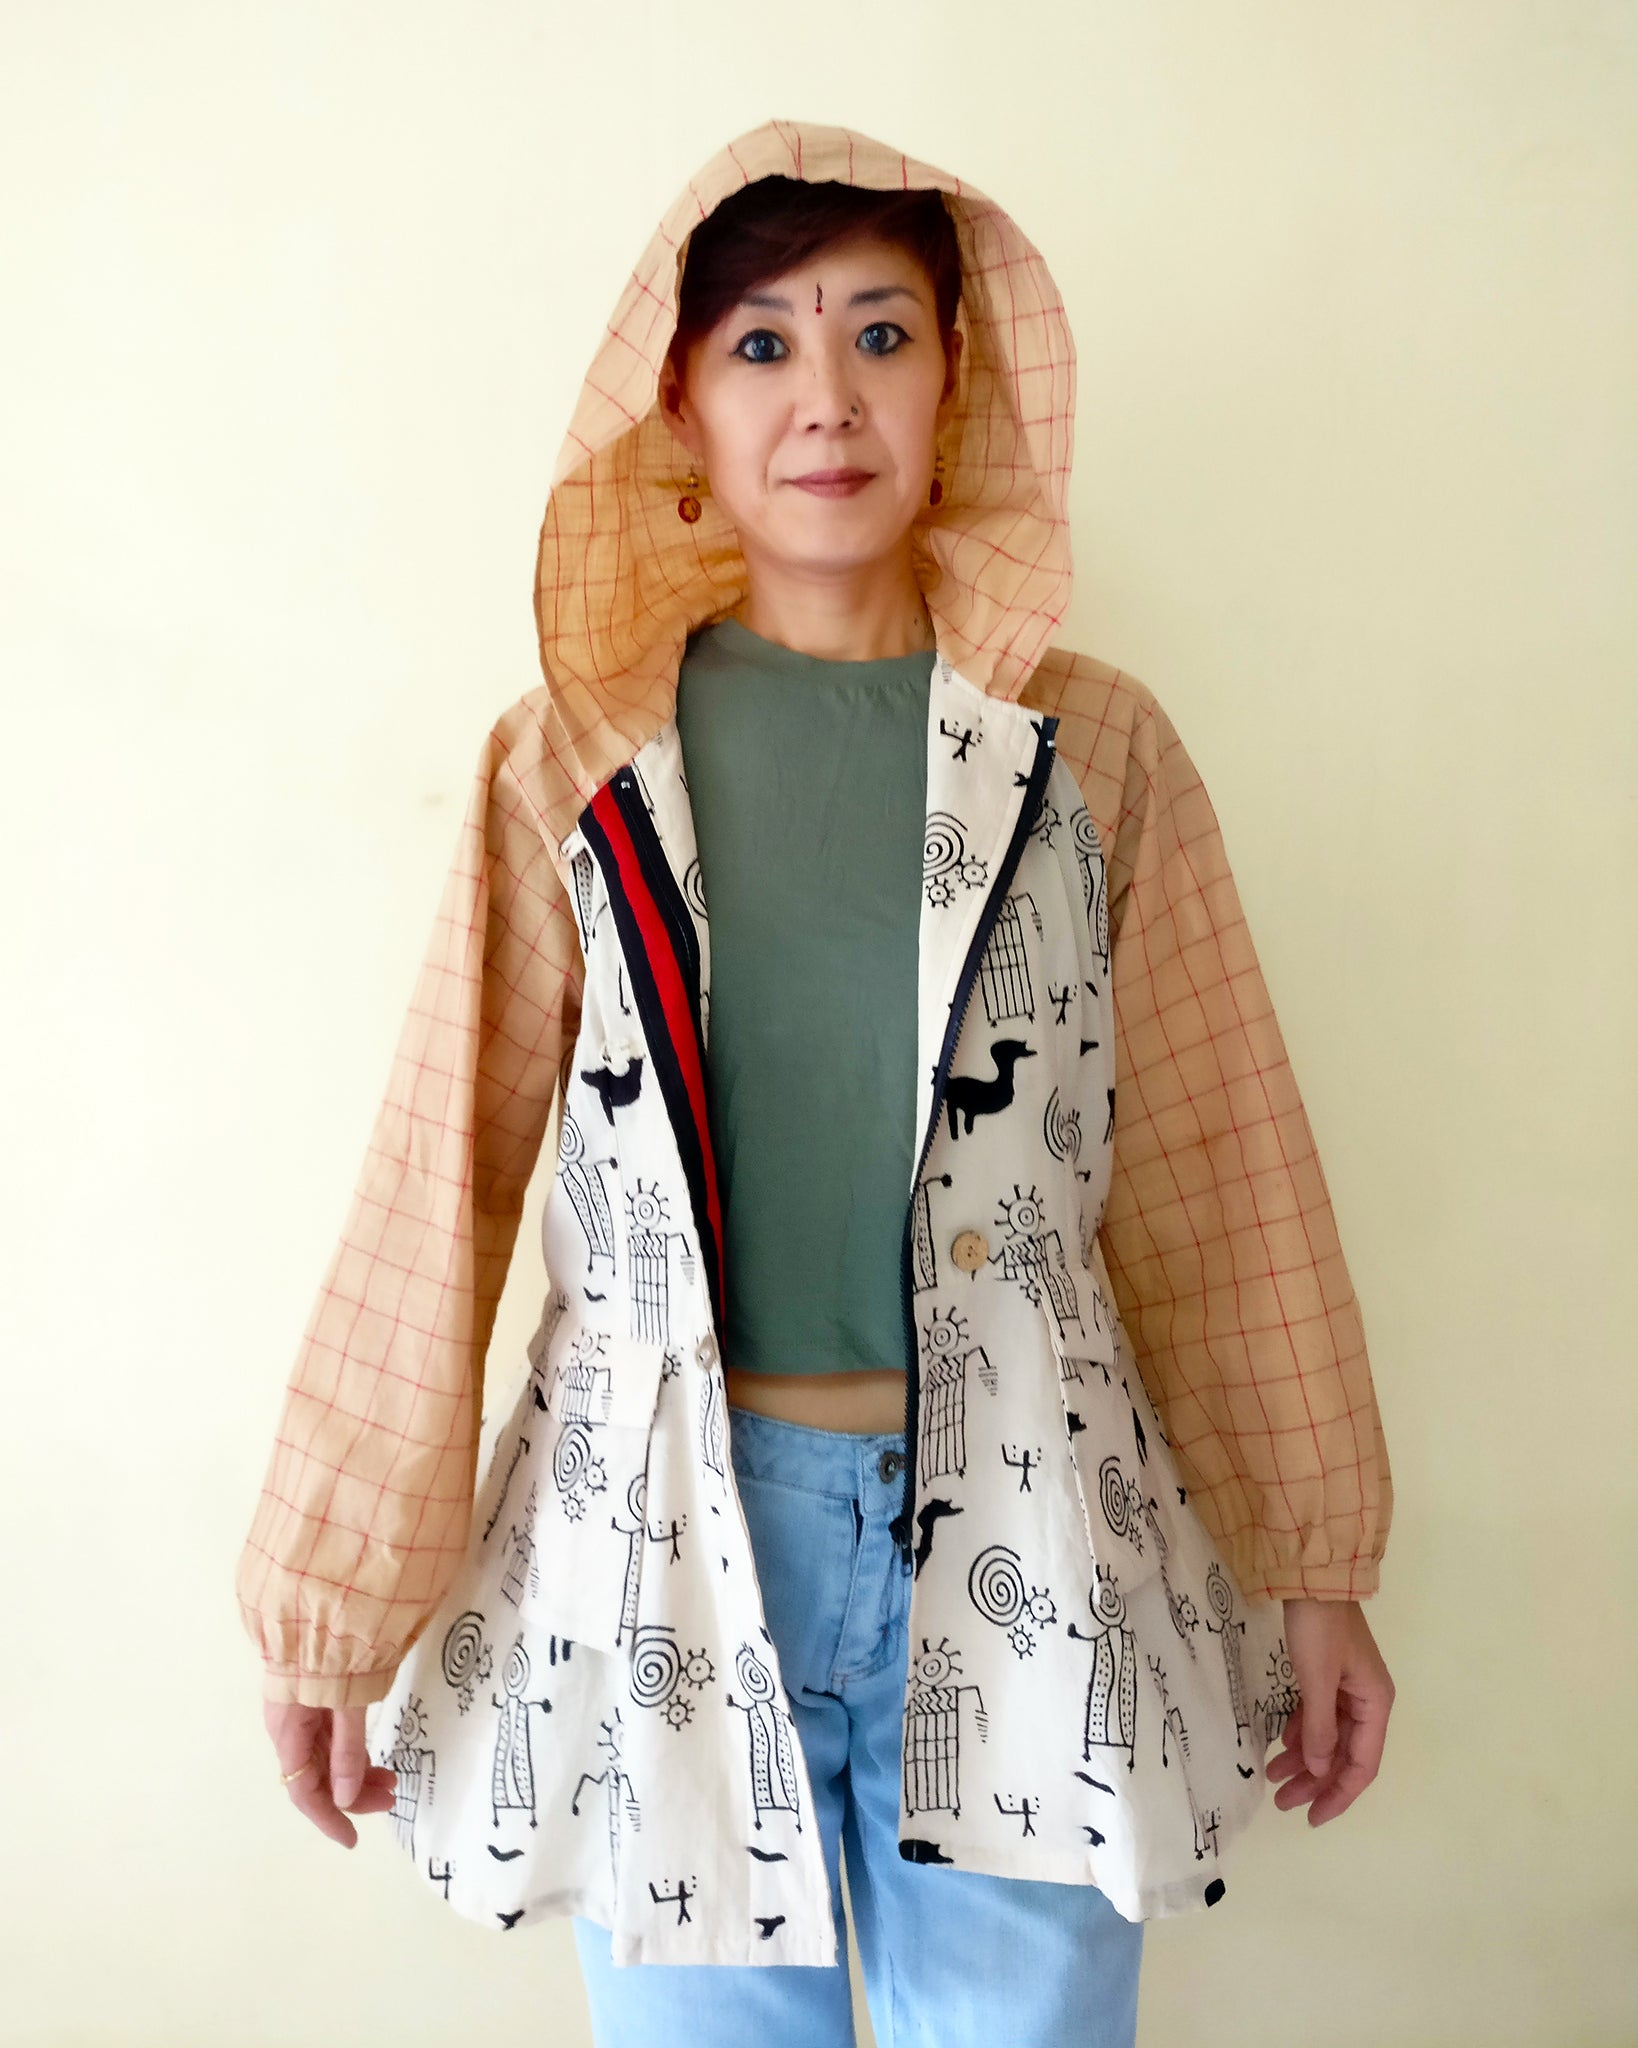 Front, Open, With Hood. MIRCHI KOMACHI Hooded Parka Jacket for ladies is a light casual outer to throw on when it's slightly chilly in winter in tropical regions, hill stations, beach, or for travel. Its cute silhouette allows you various stylings. It's made with thin cotton with folk art print (black). Shop online!